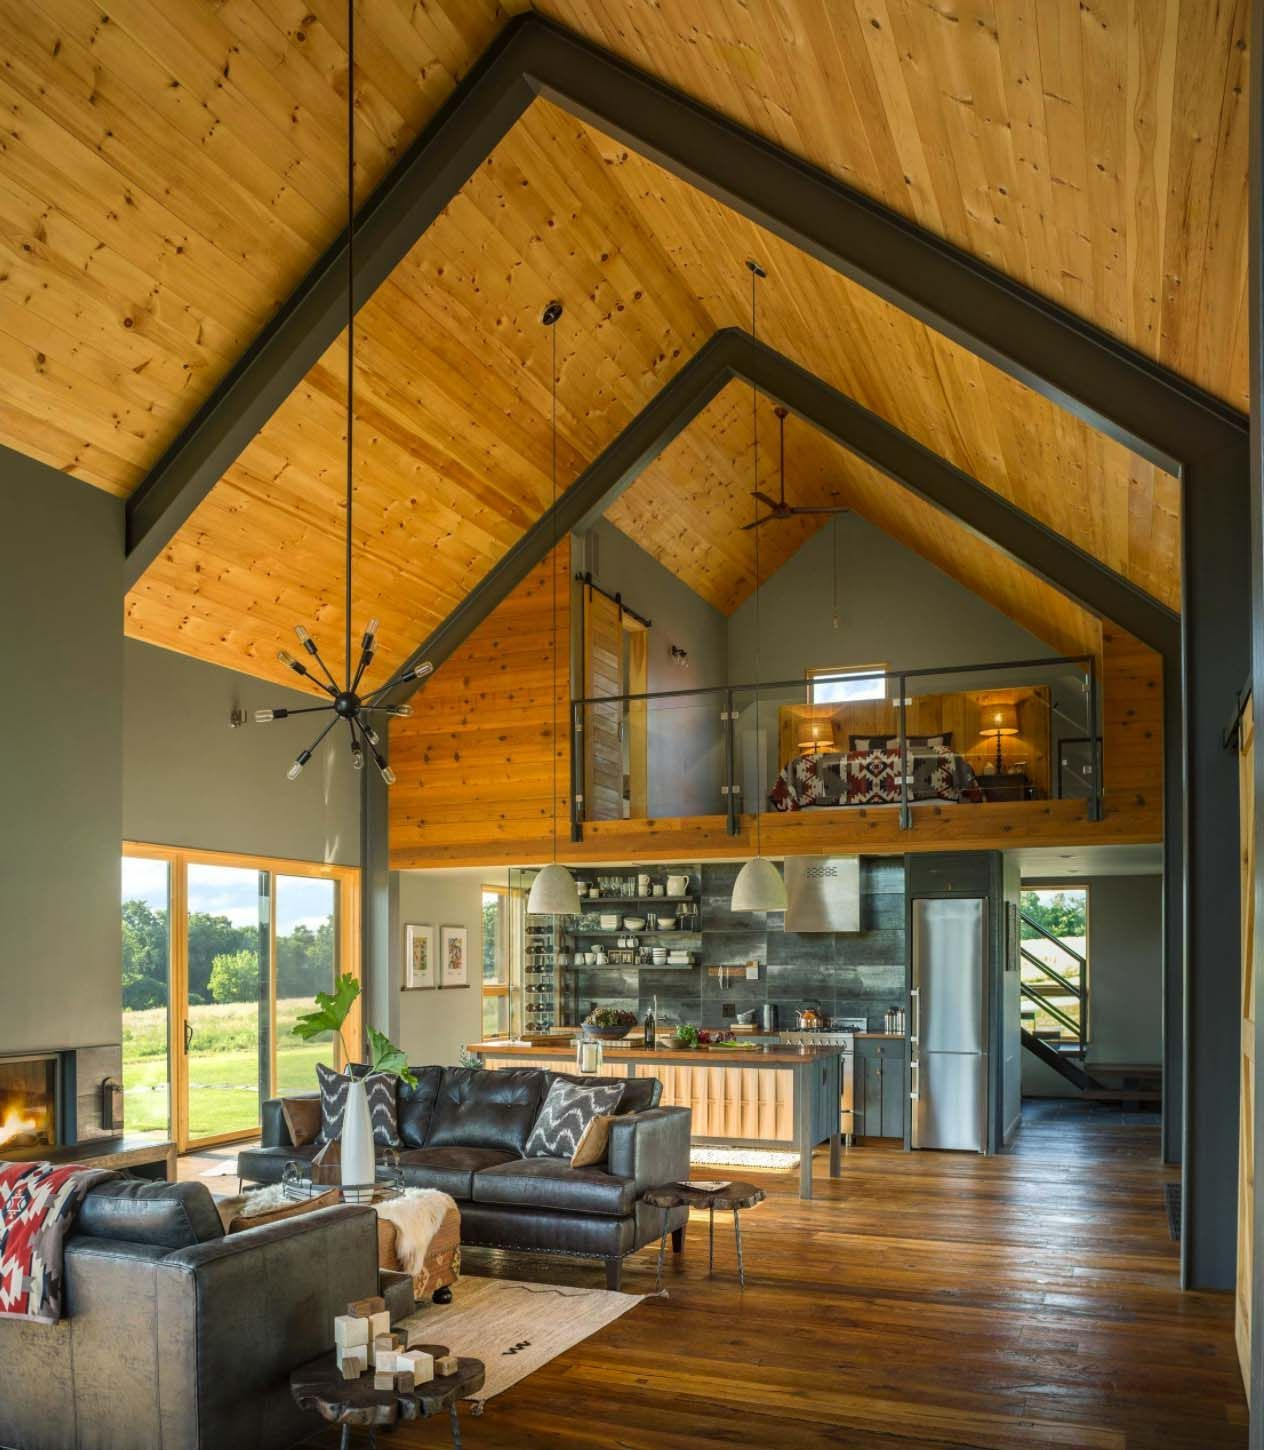 Modern Home Plans With Lofts: Small And Cozy Modern Barn House Getaway In Vermont